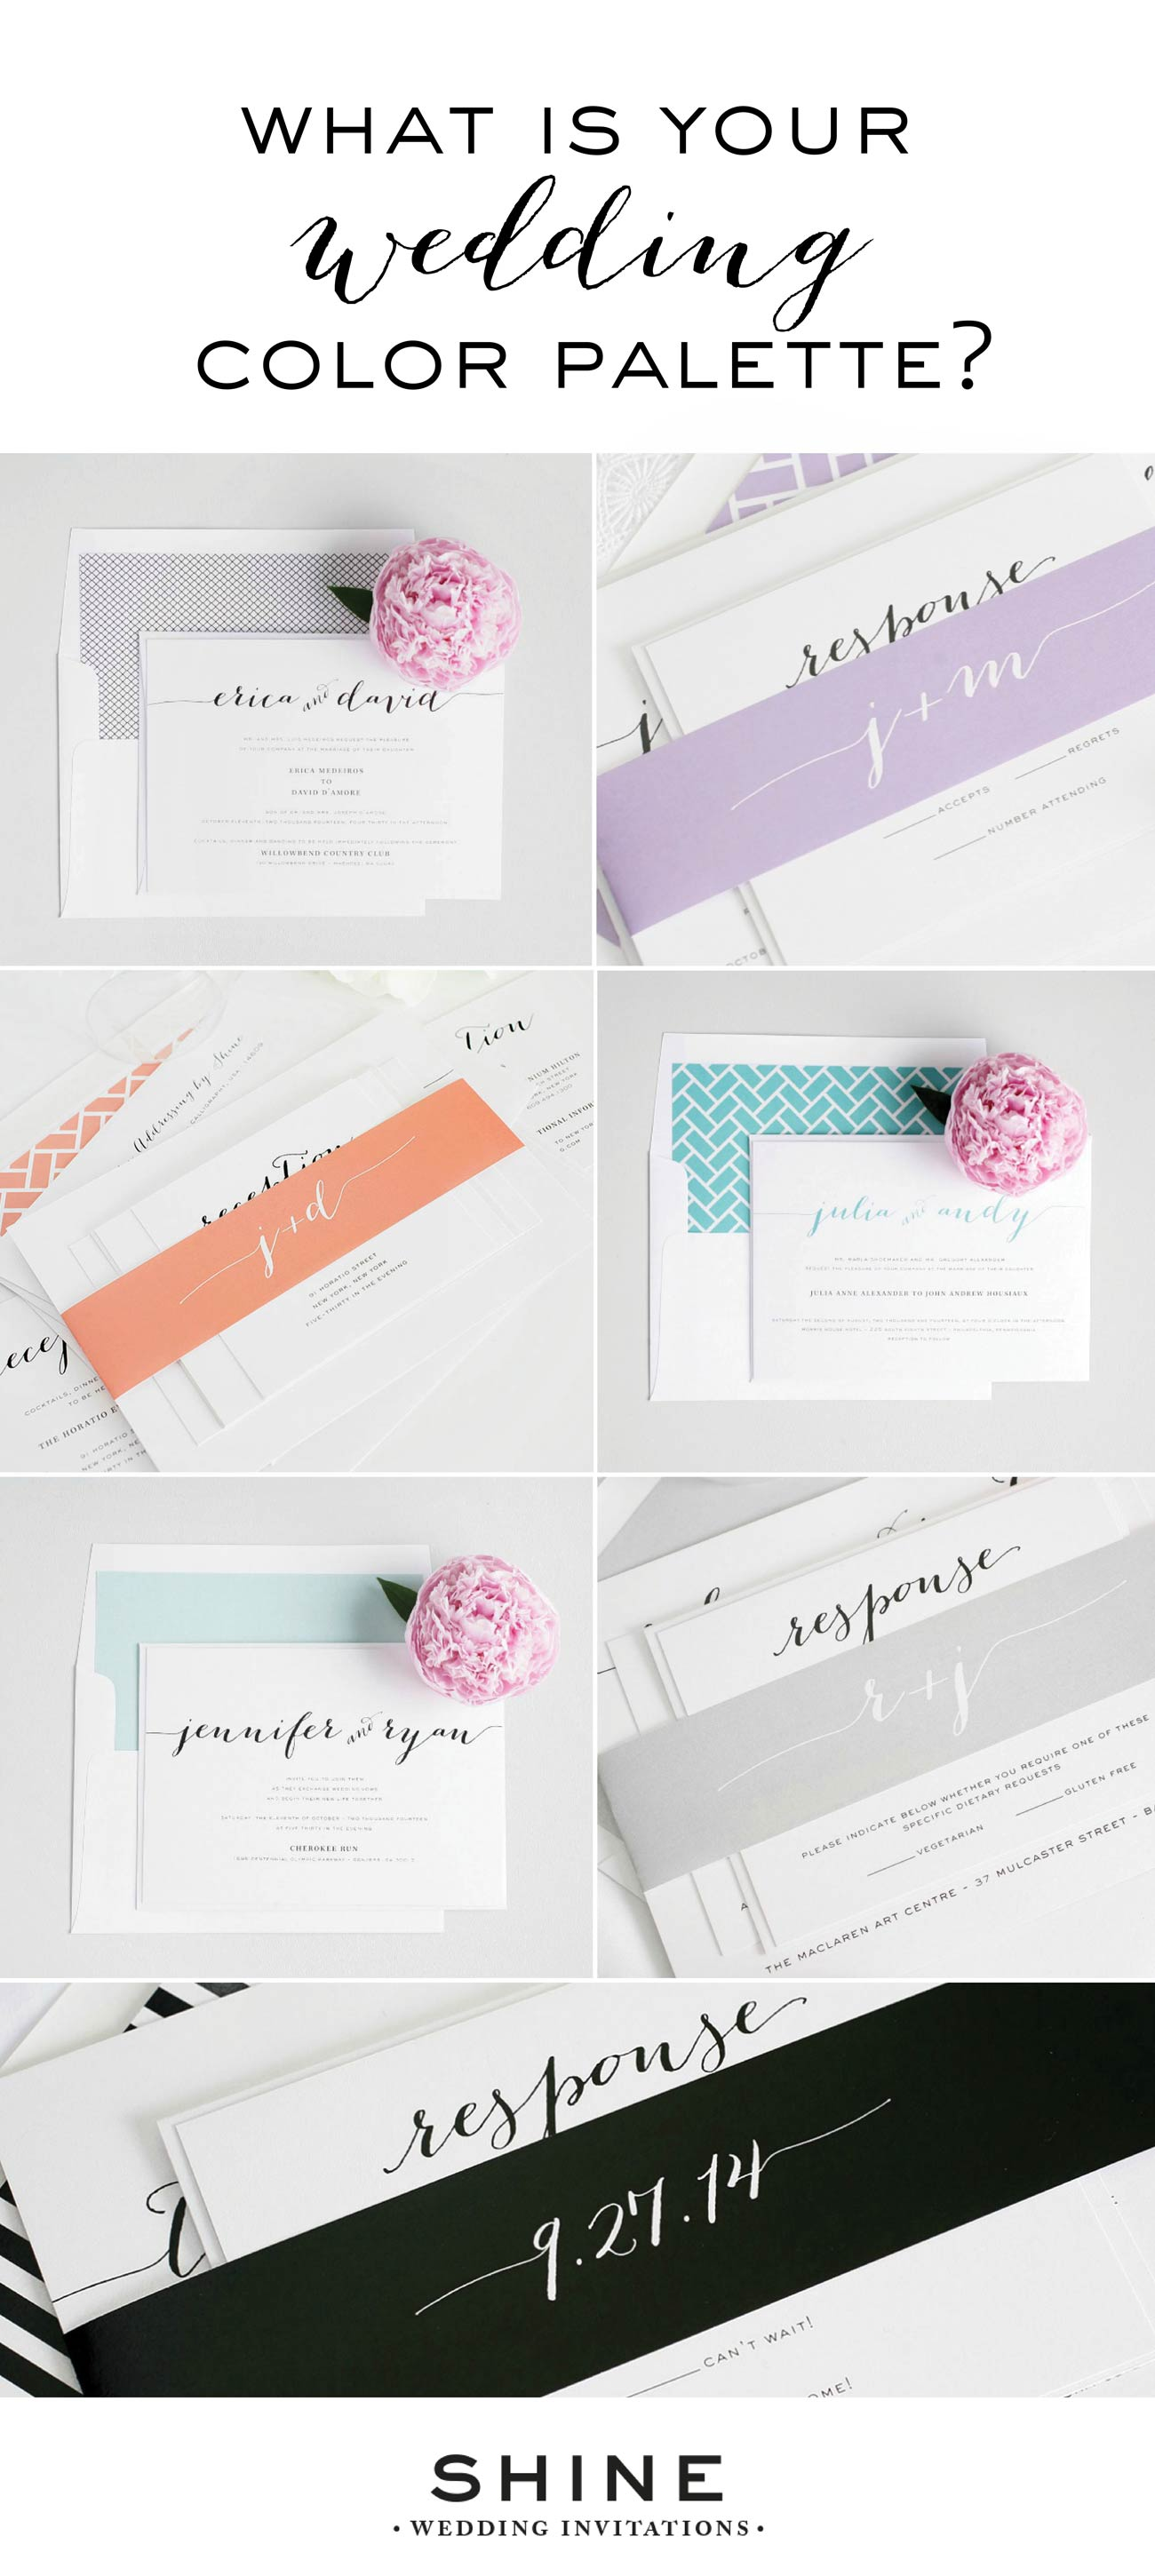 What\'s your wedding color palette? – Wedding Invitations